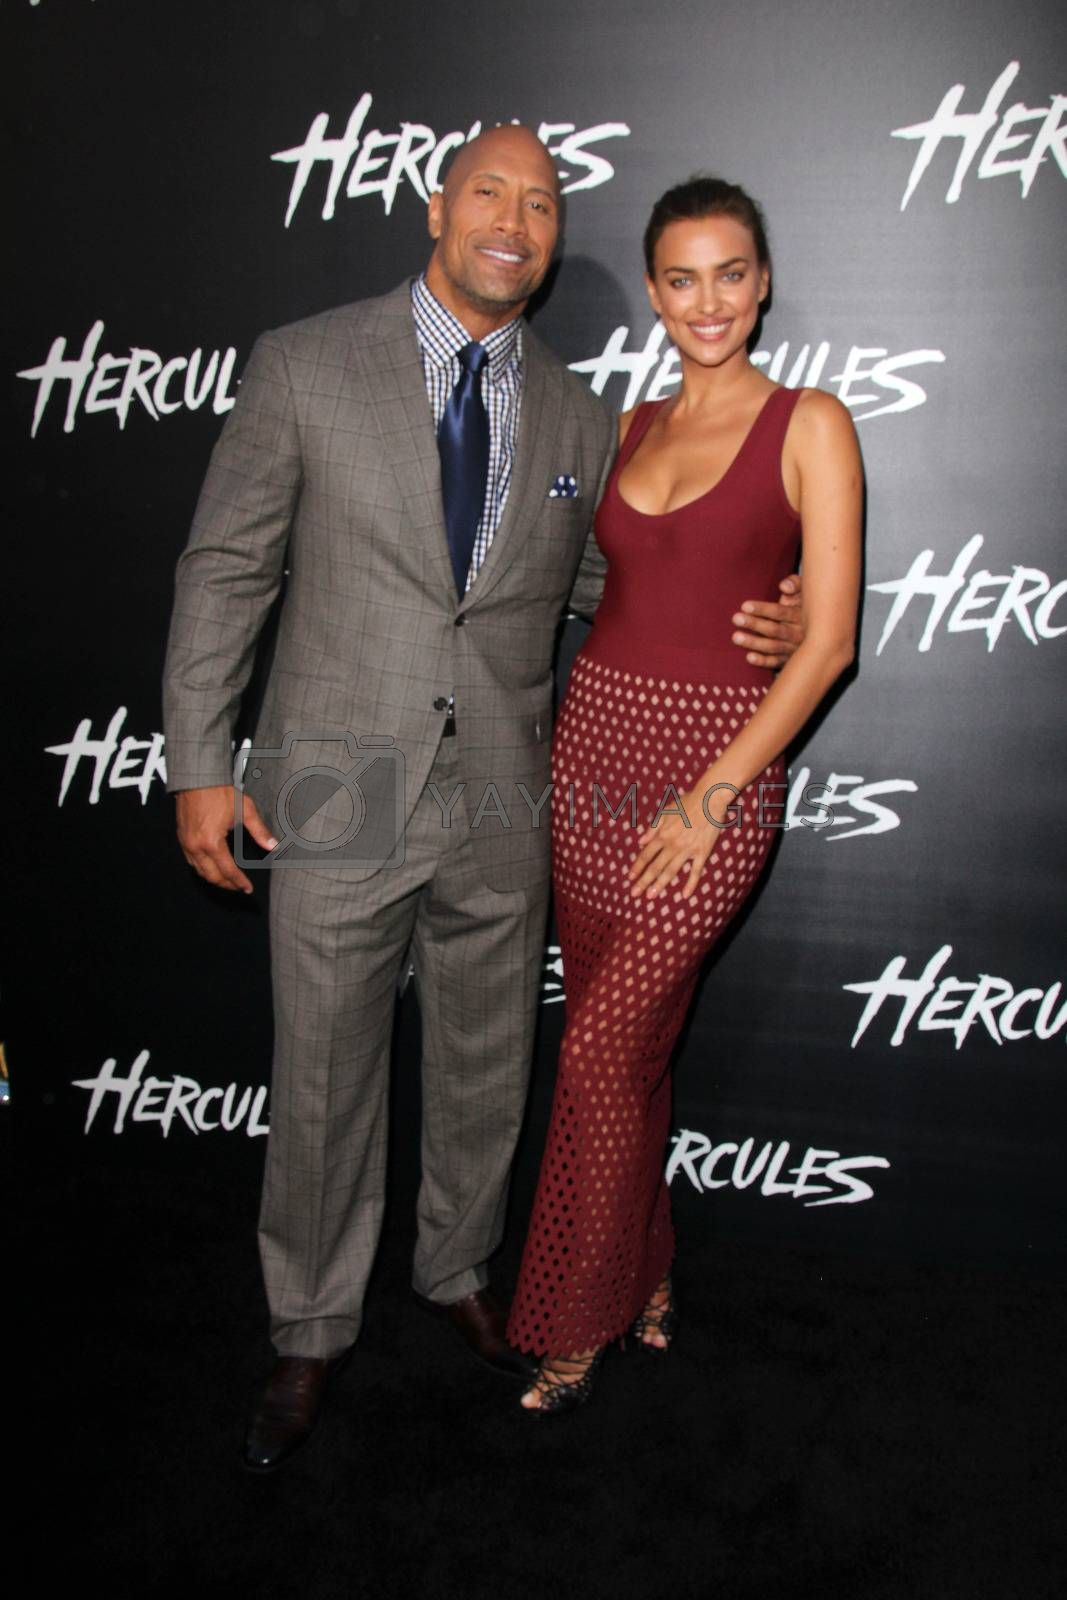 """Royalty free image of Dwayne Johnson, Irina Shayk at the """"Hercules"""" Los Angeles Premiere, TCL Chinese Theater, Hollywood, CA  07-23-14/ImageCollect by ImageCollect"""